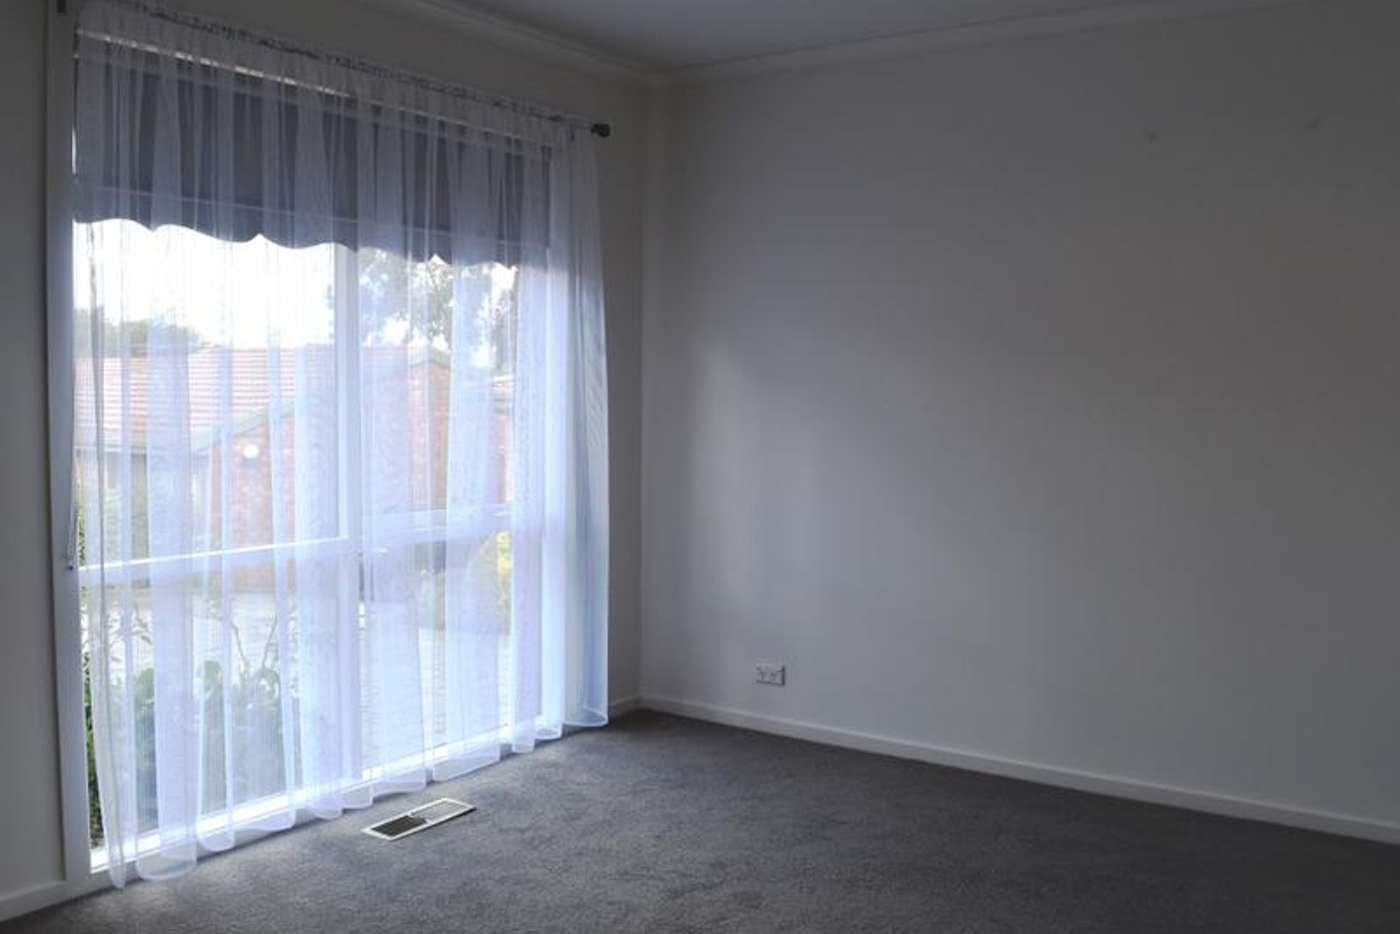 Sixth view of Homely unit listing, 1/160 High Street, Doncaster VIC 3108